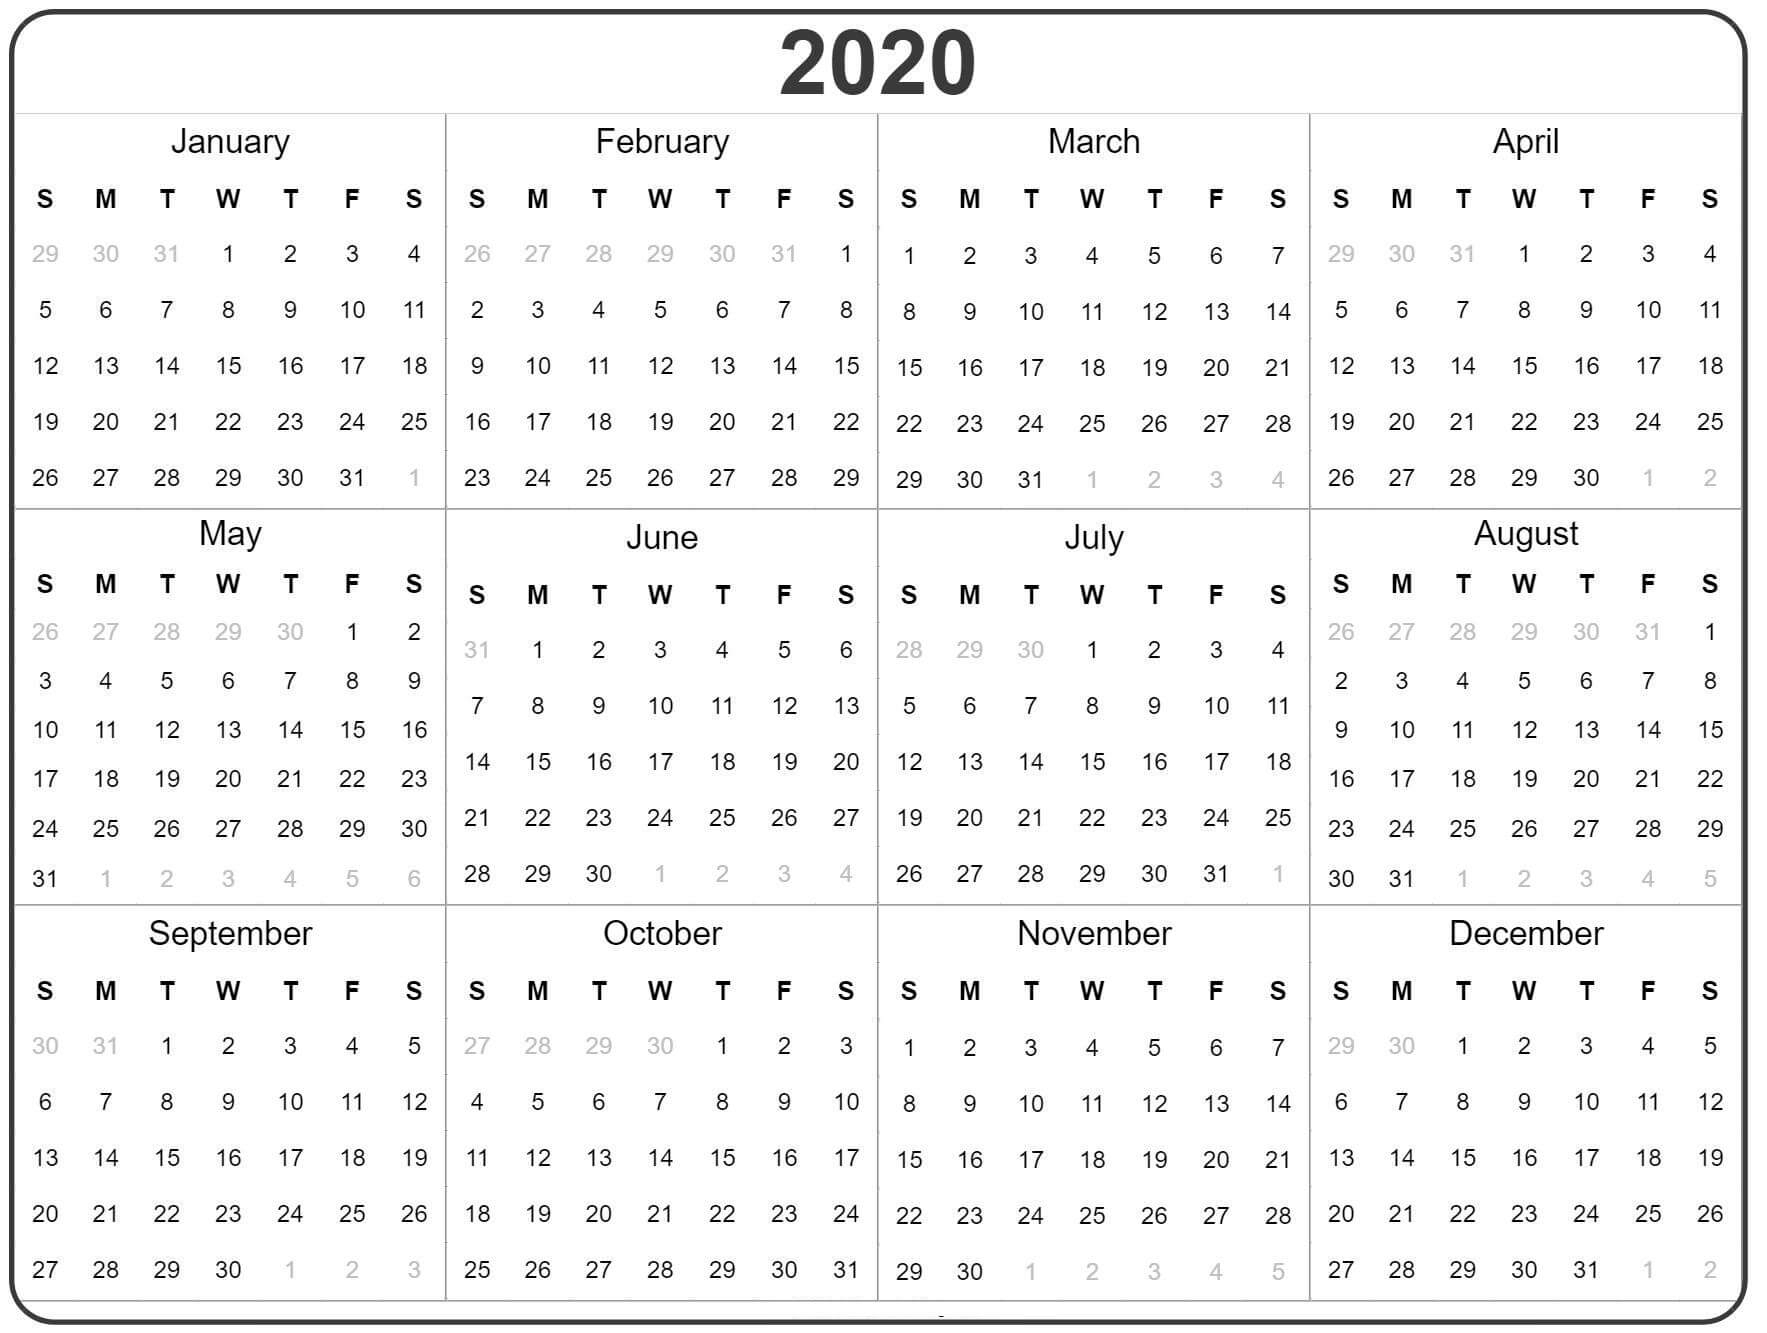 Free Yearly Calendar 2020 With Notes - 2019 Calendars For intended for At A Glance Calendars 2020